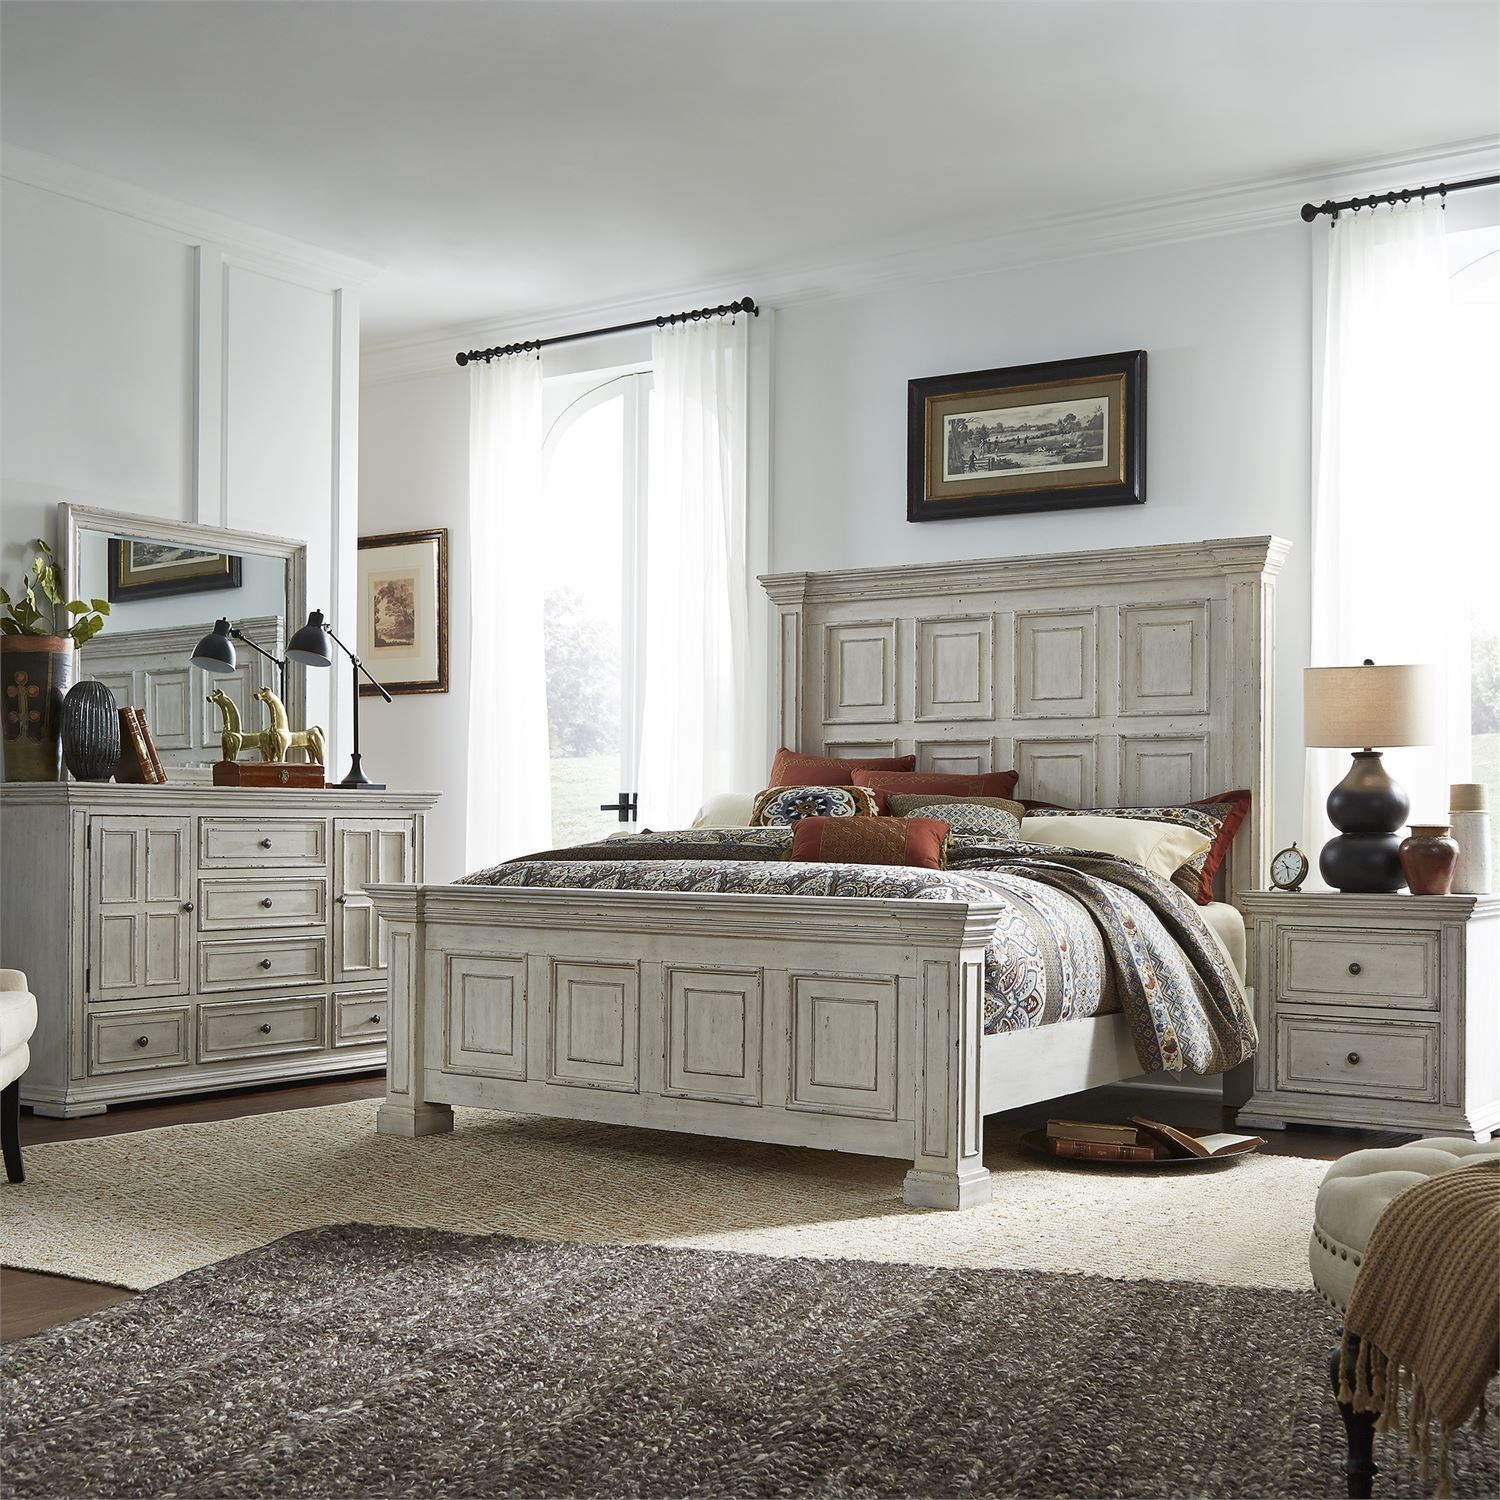 Big Valley Queen Bedroom Group by Liberty Furniture at Suburban Furniture